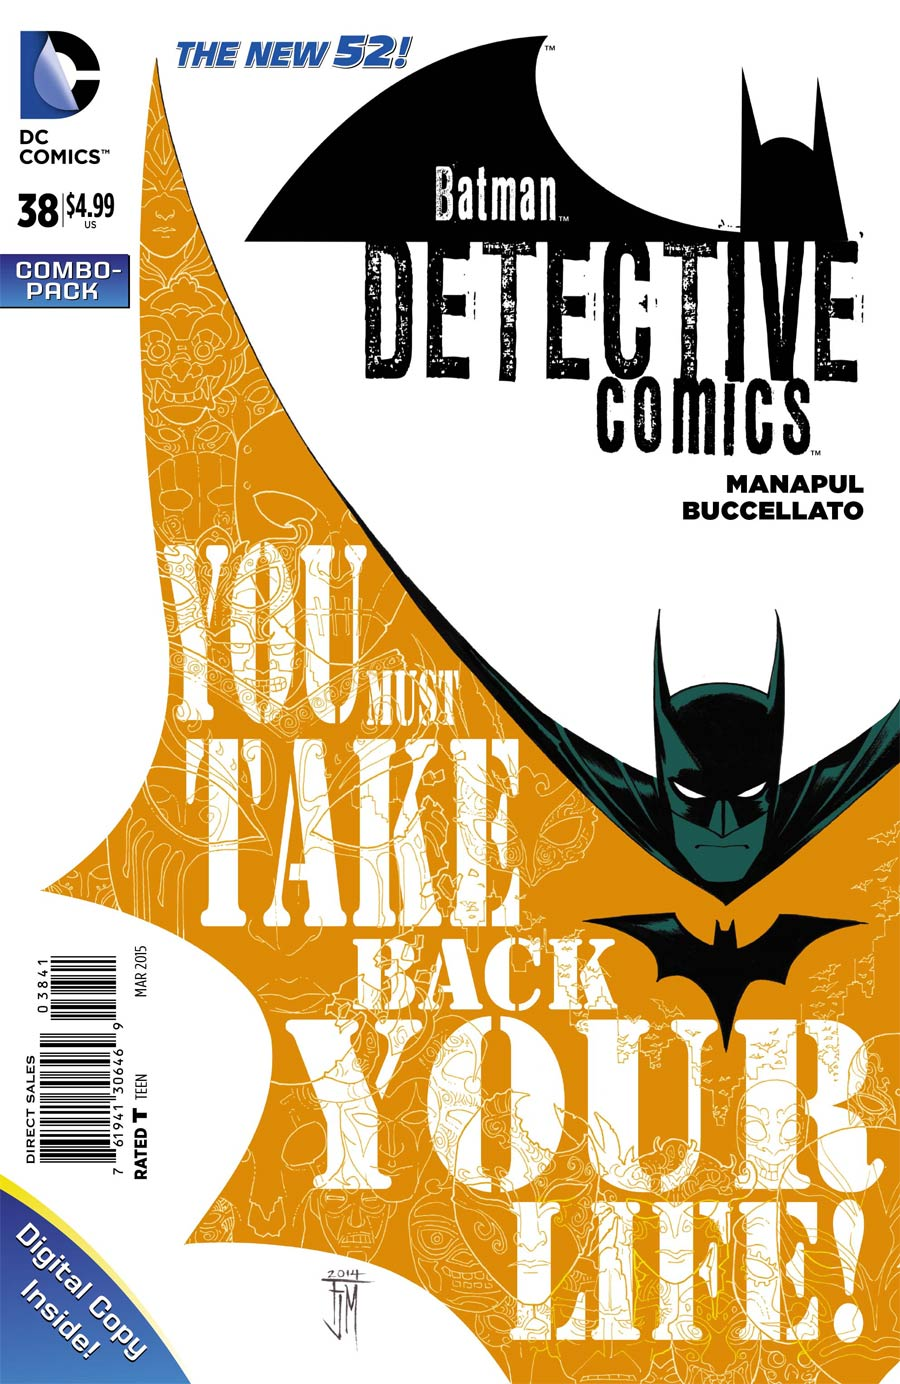 Detective Comics Vol 2 #38 Cover D Combo Pack Without Polybag